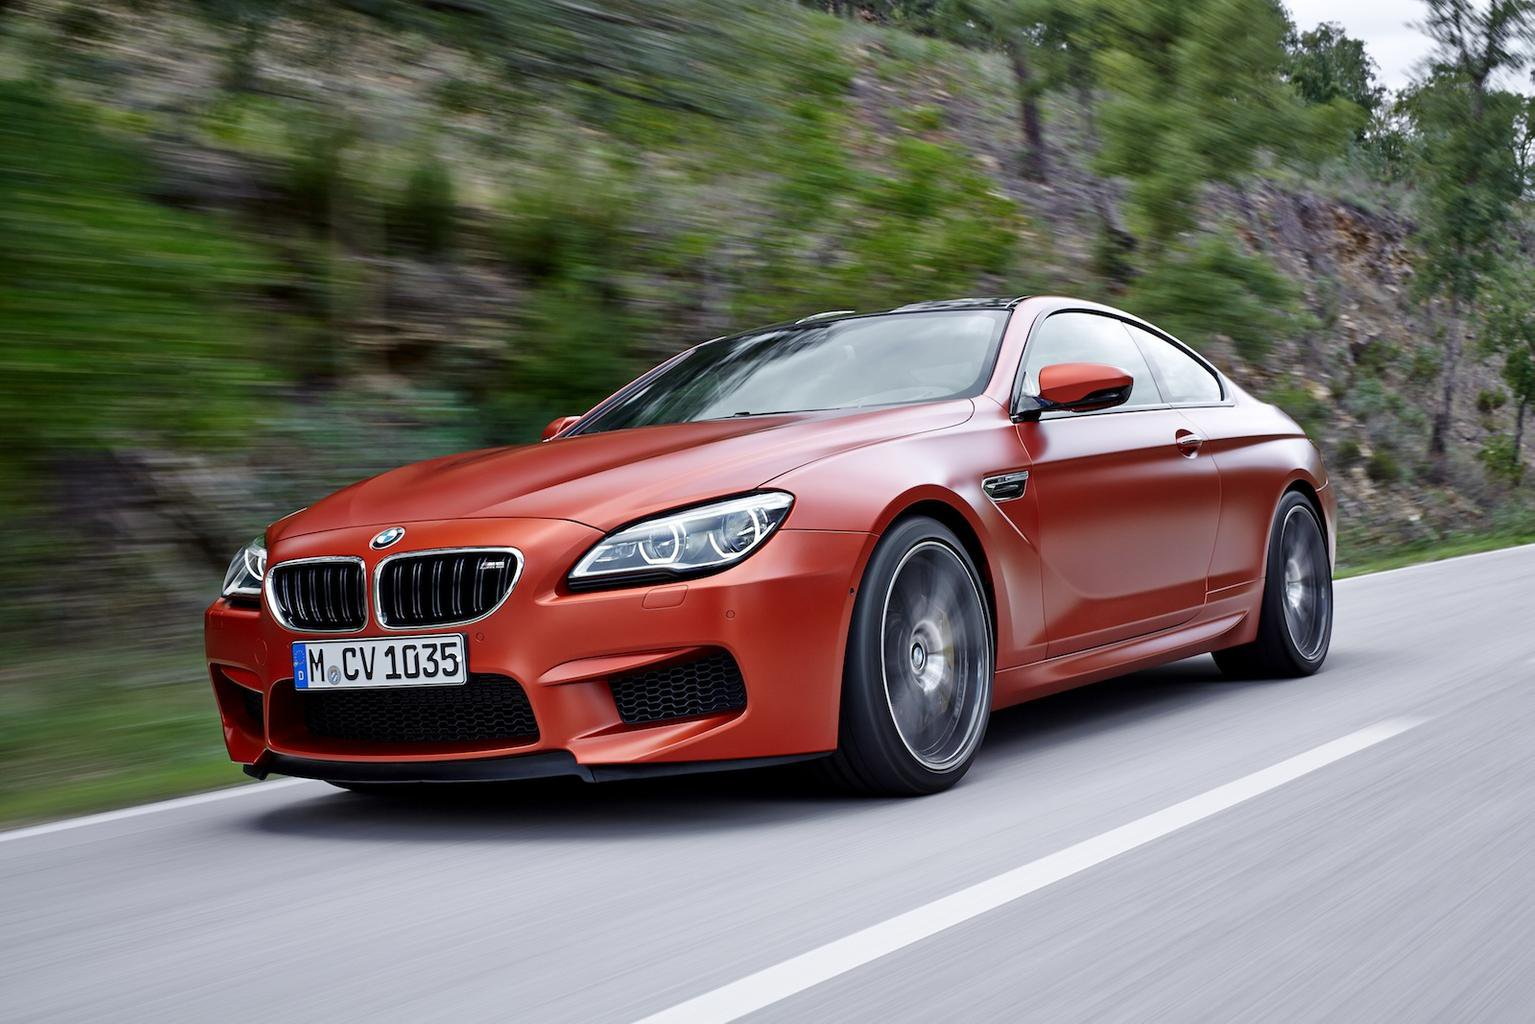 Face-lifted BMW 6 Series and M6 revealed